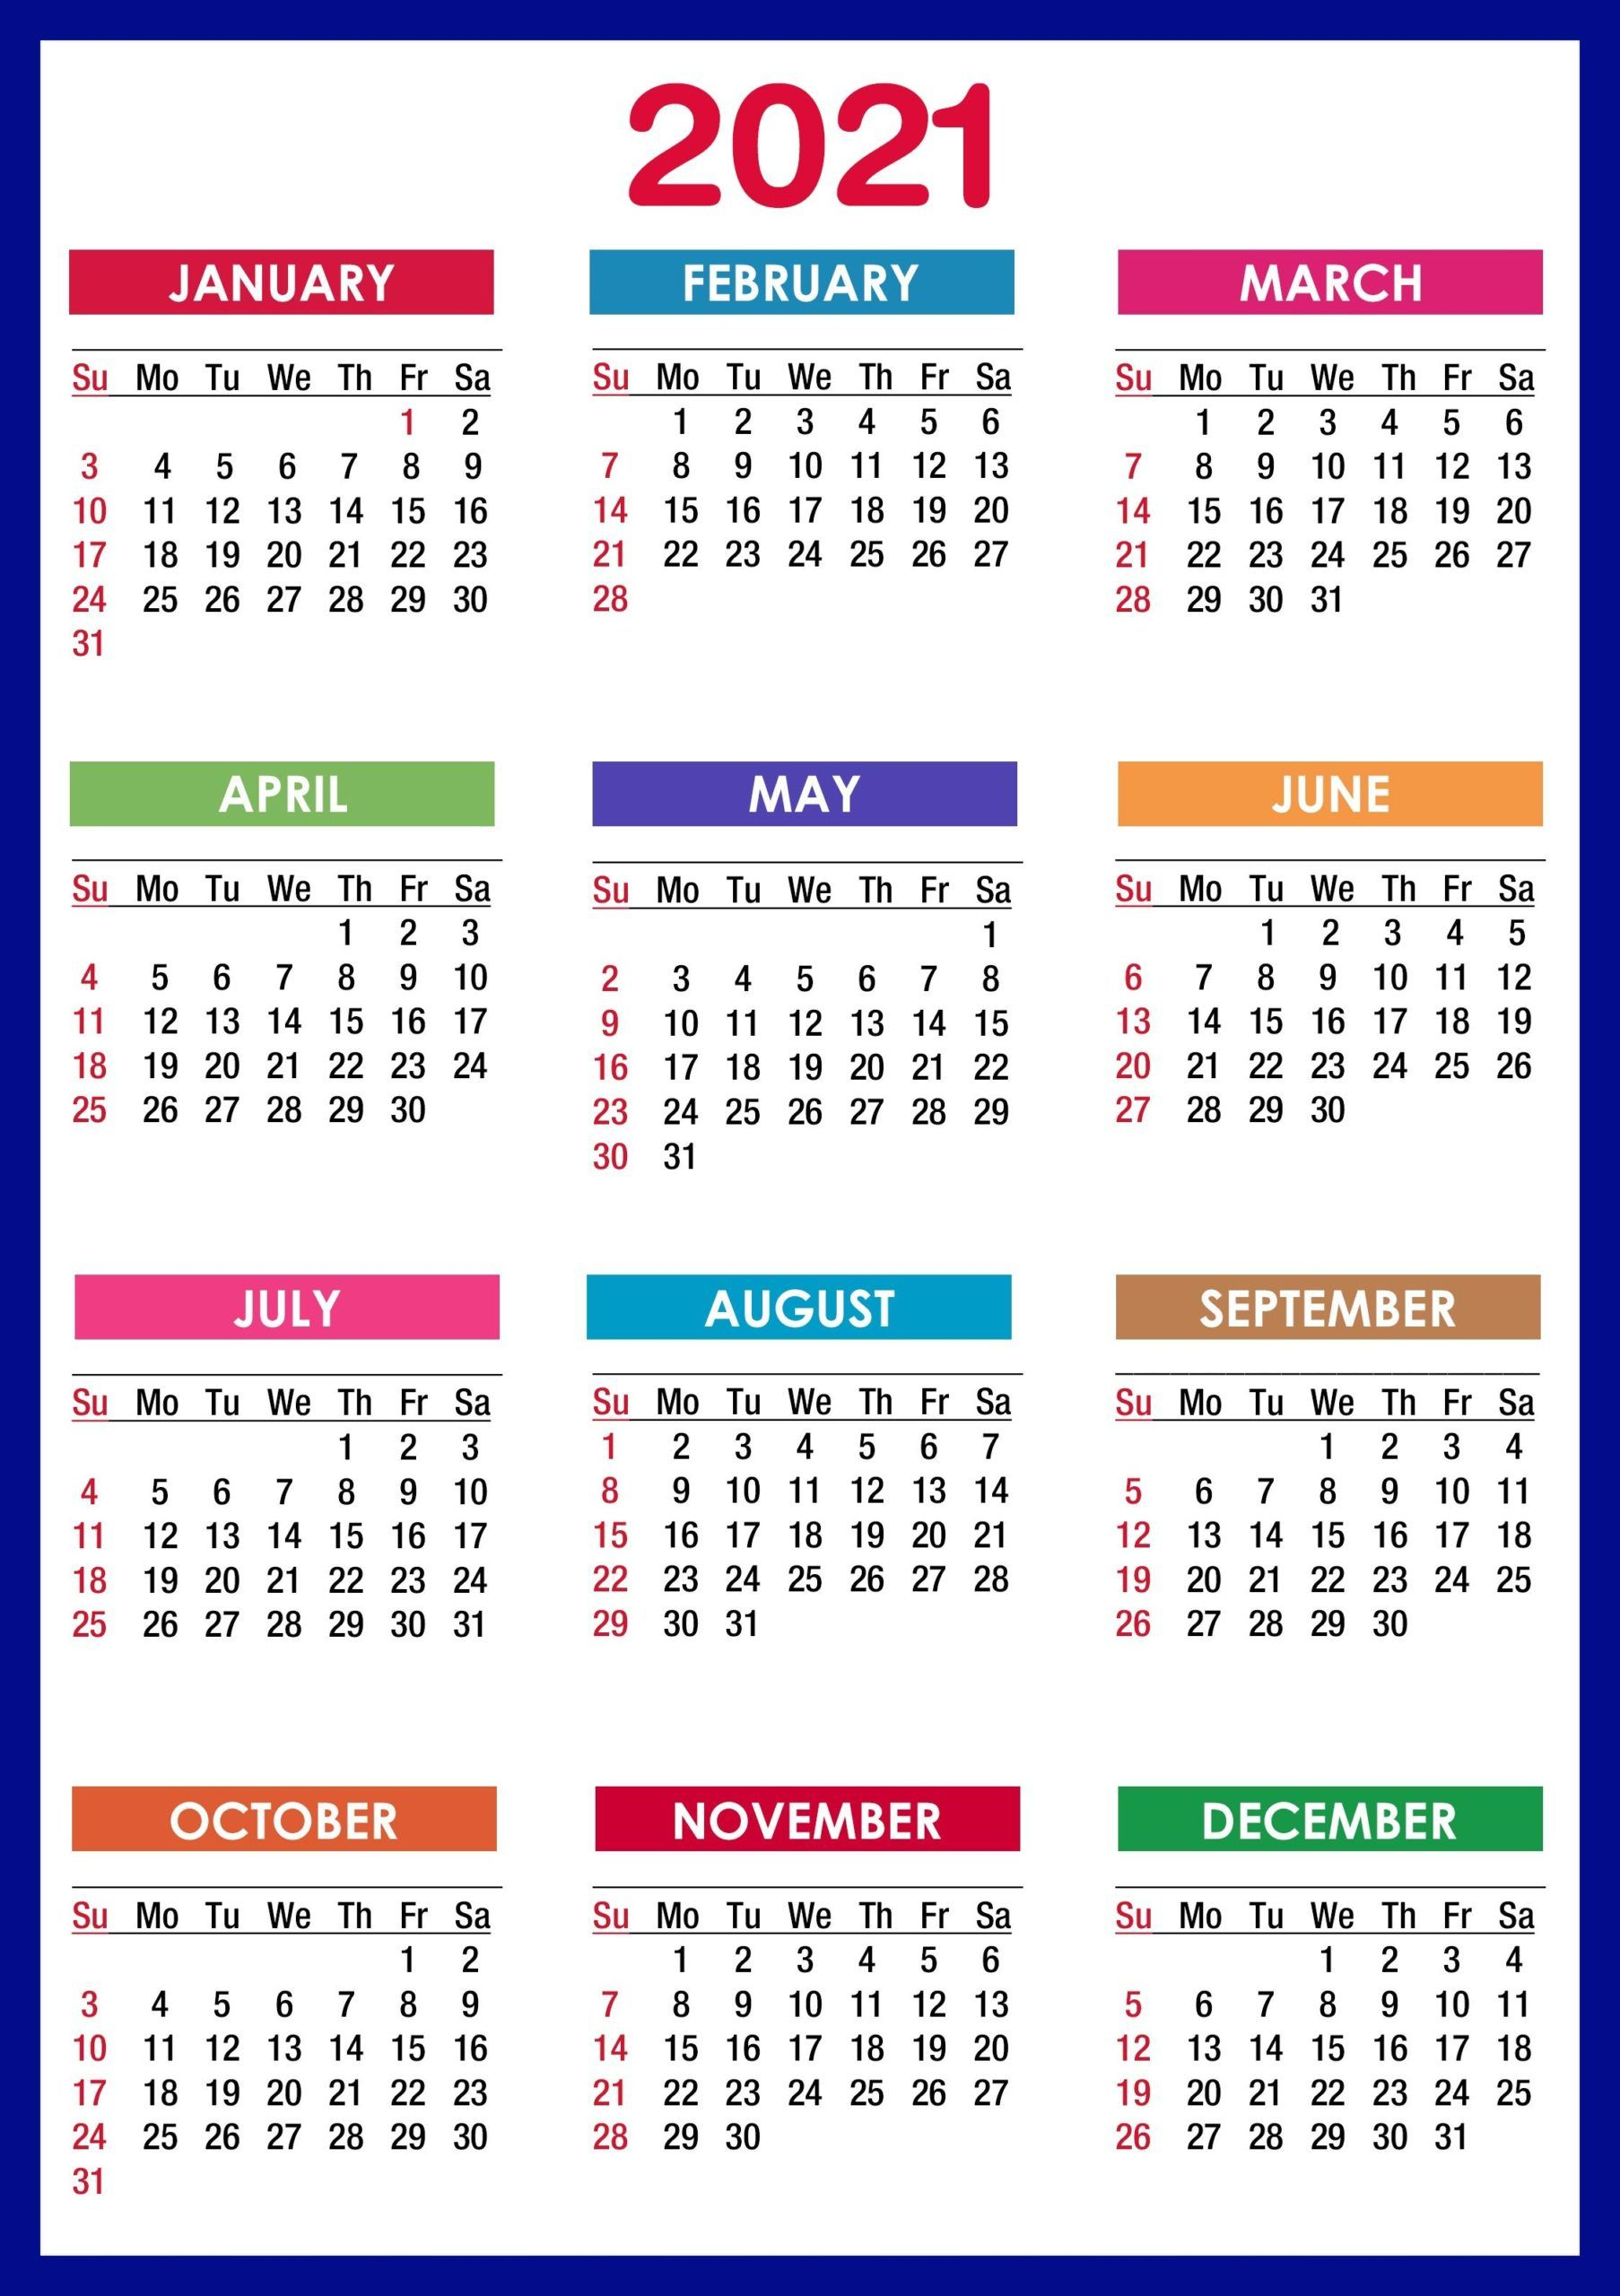 2021 Calendar Printable | 12 Months All In One | Calendar